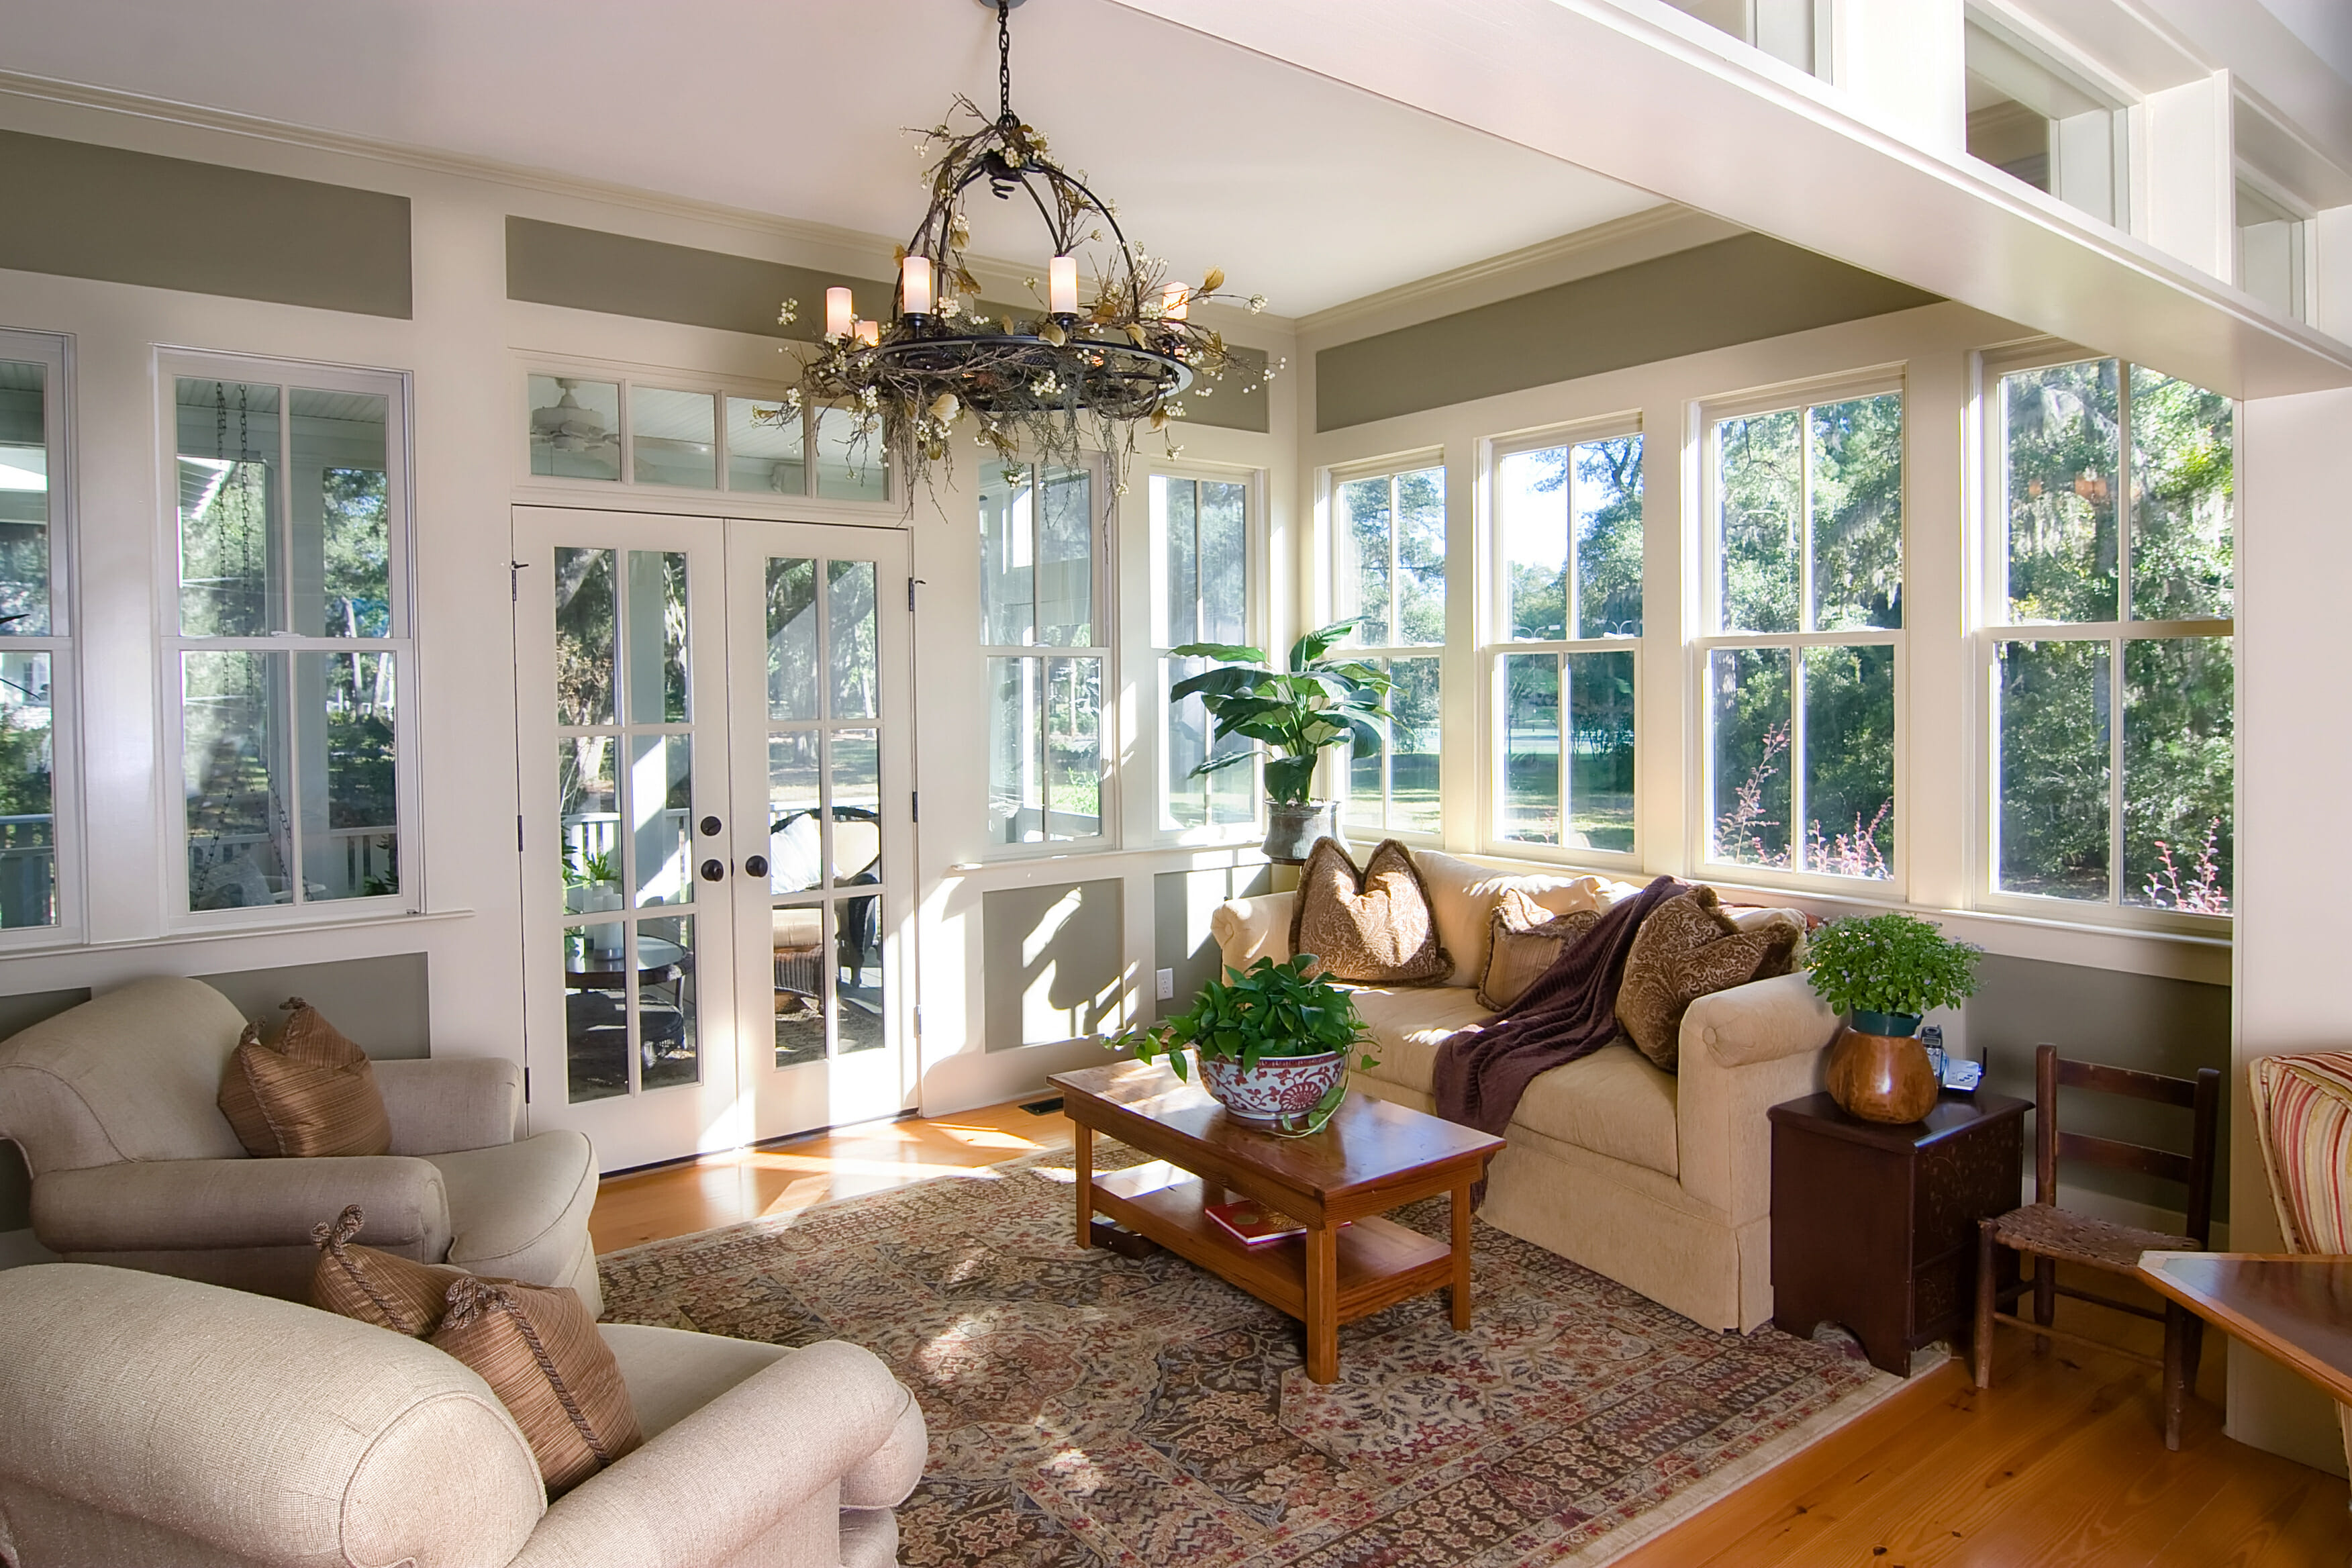 Furnished Sun roomSunroom Decorating Ideas   Modernize. Sunroom Decor Ideas. Home Design Ideas